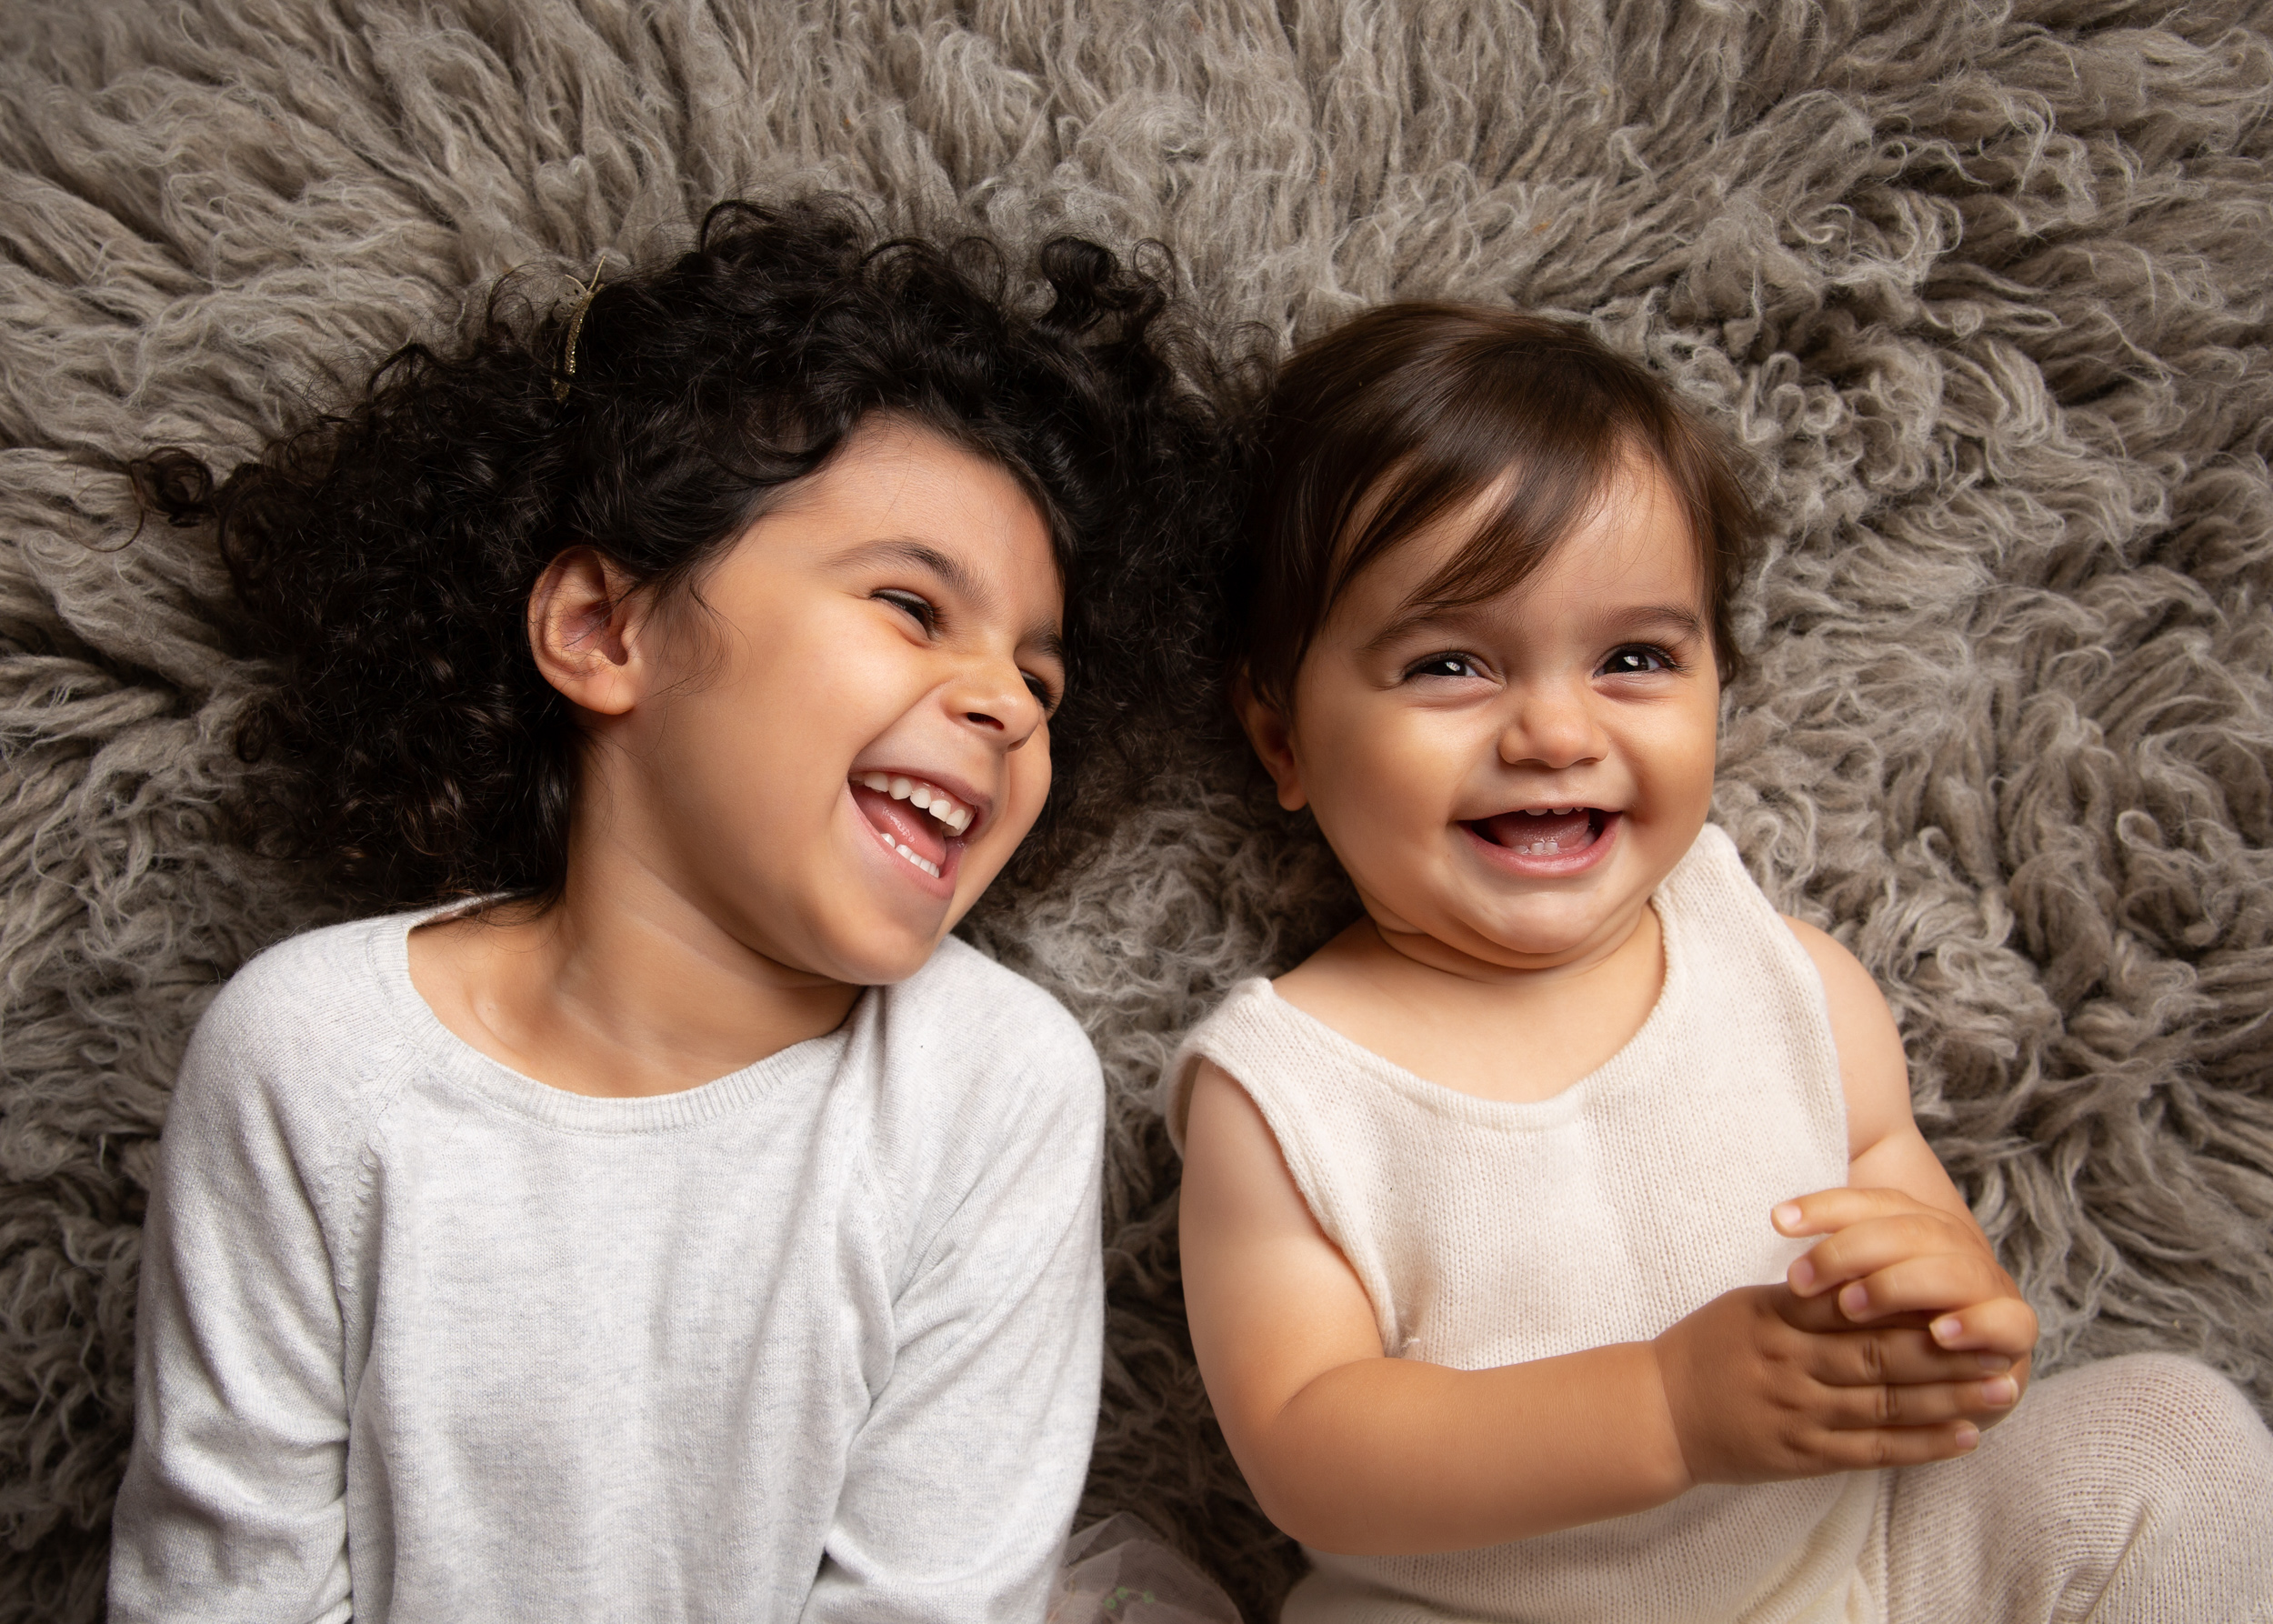 Siblings laughing together at their family portrait session in Cheshire